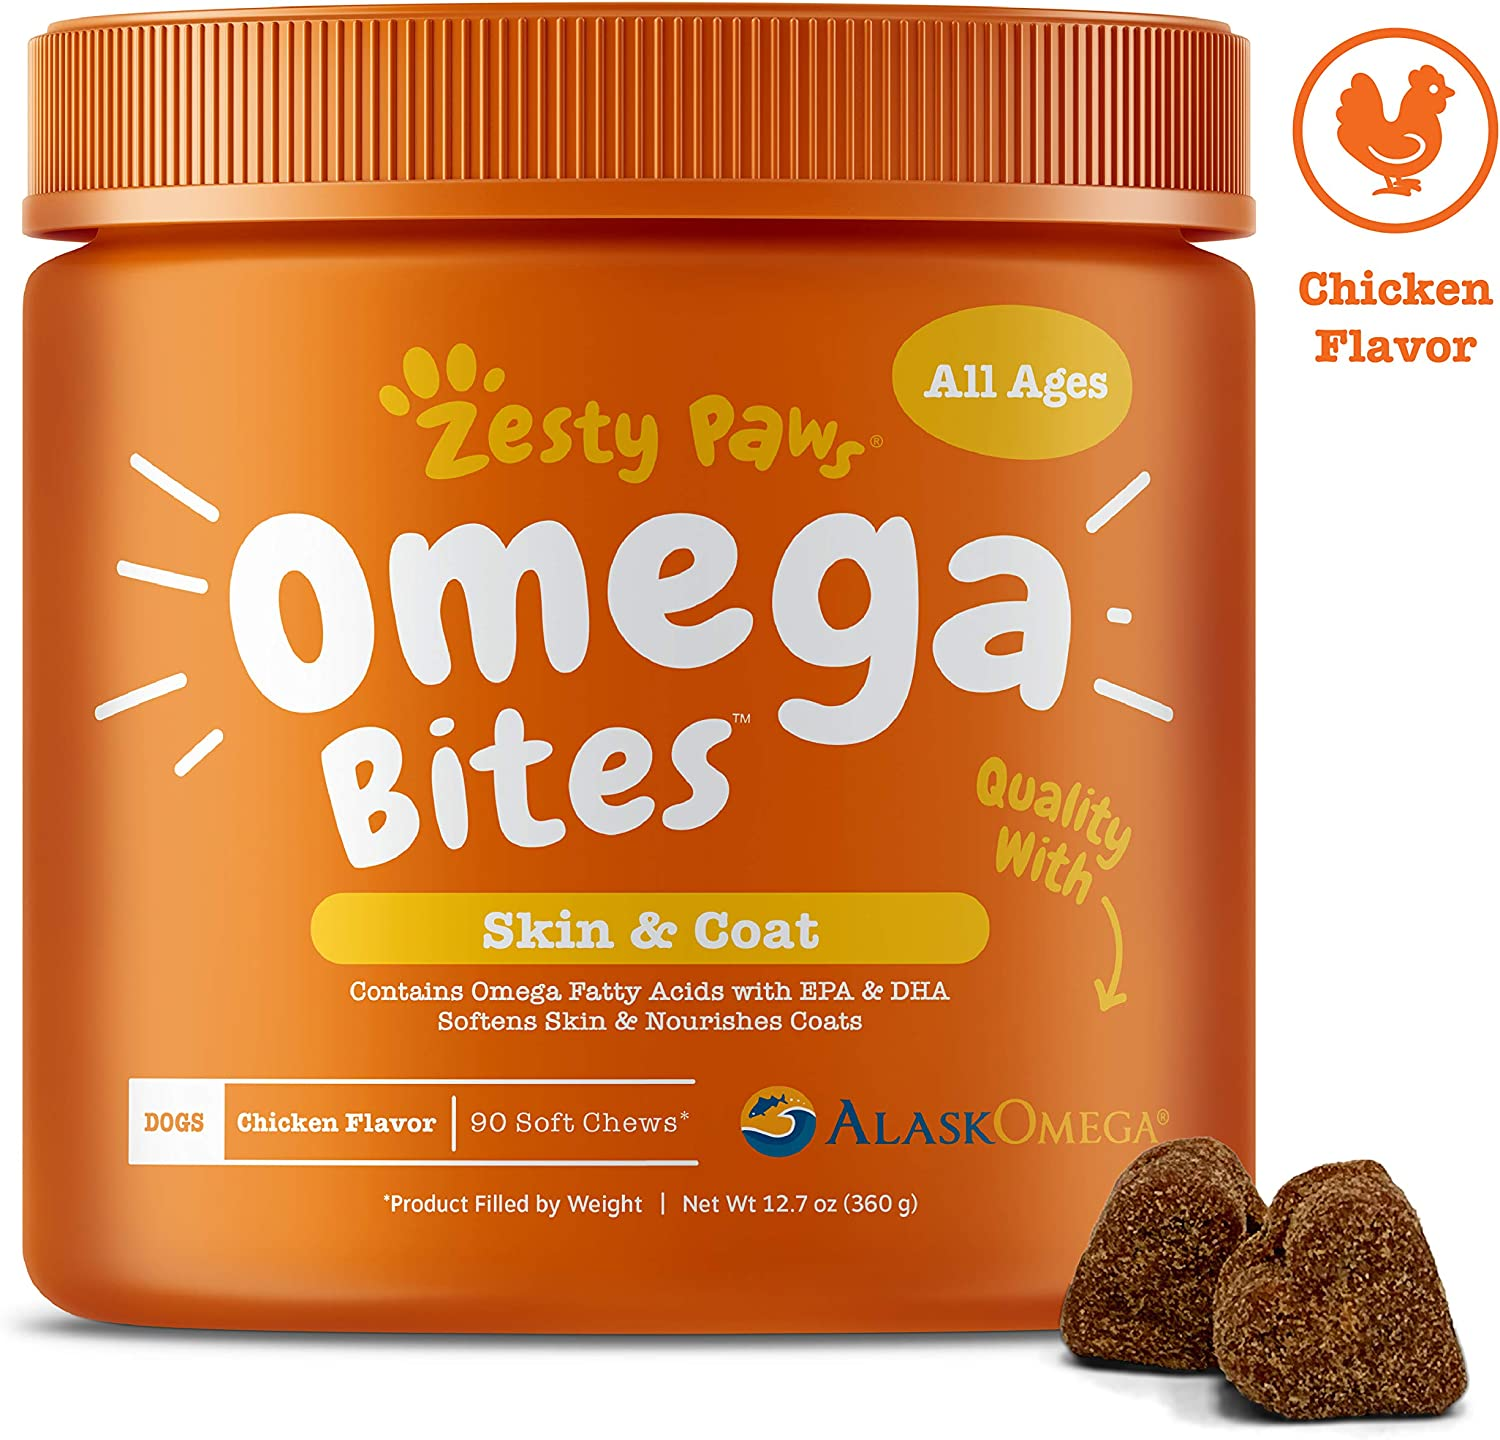 Zesty Paws Omega 3 Alaskan Fish Oil Chew Treats for Dogs – with AlaskOmega for EPA DHA Fatty Acids – Itch Free Skin – Hip Joint Support Heart Brain Health